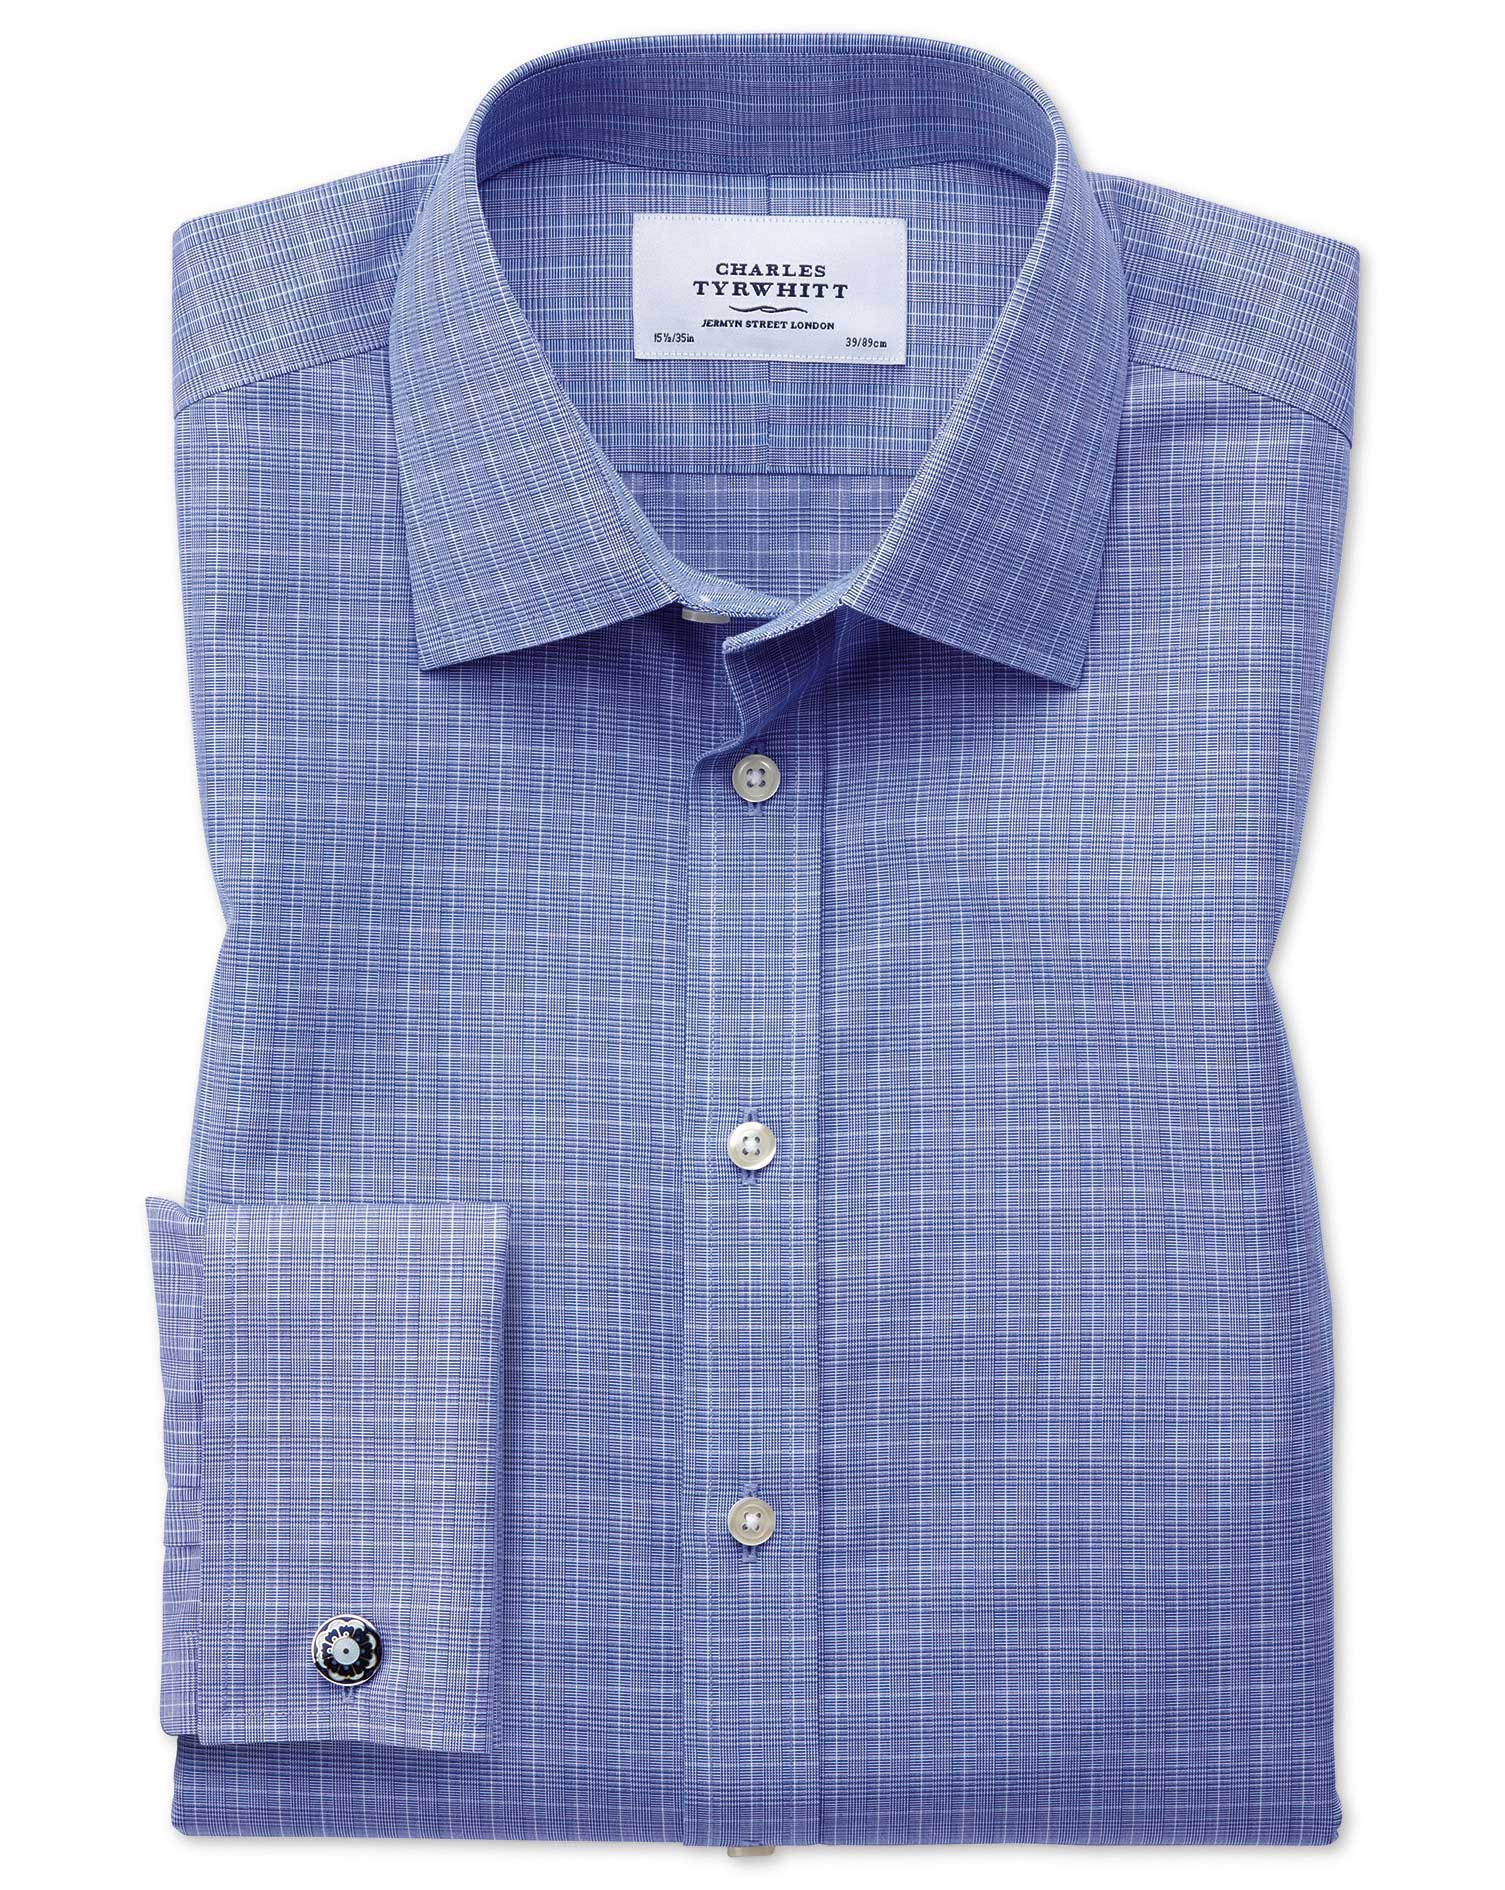 Slim Fit Non-Iron Prince Of Wales Blue Cotton Formal Shirt Single Cuff Size 15.5/34 by Charles Tyrwh